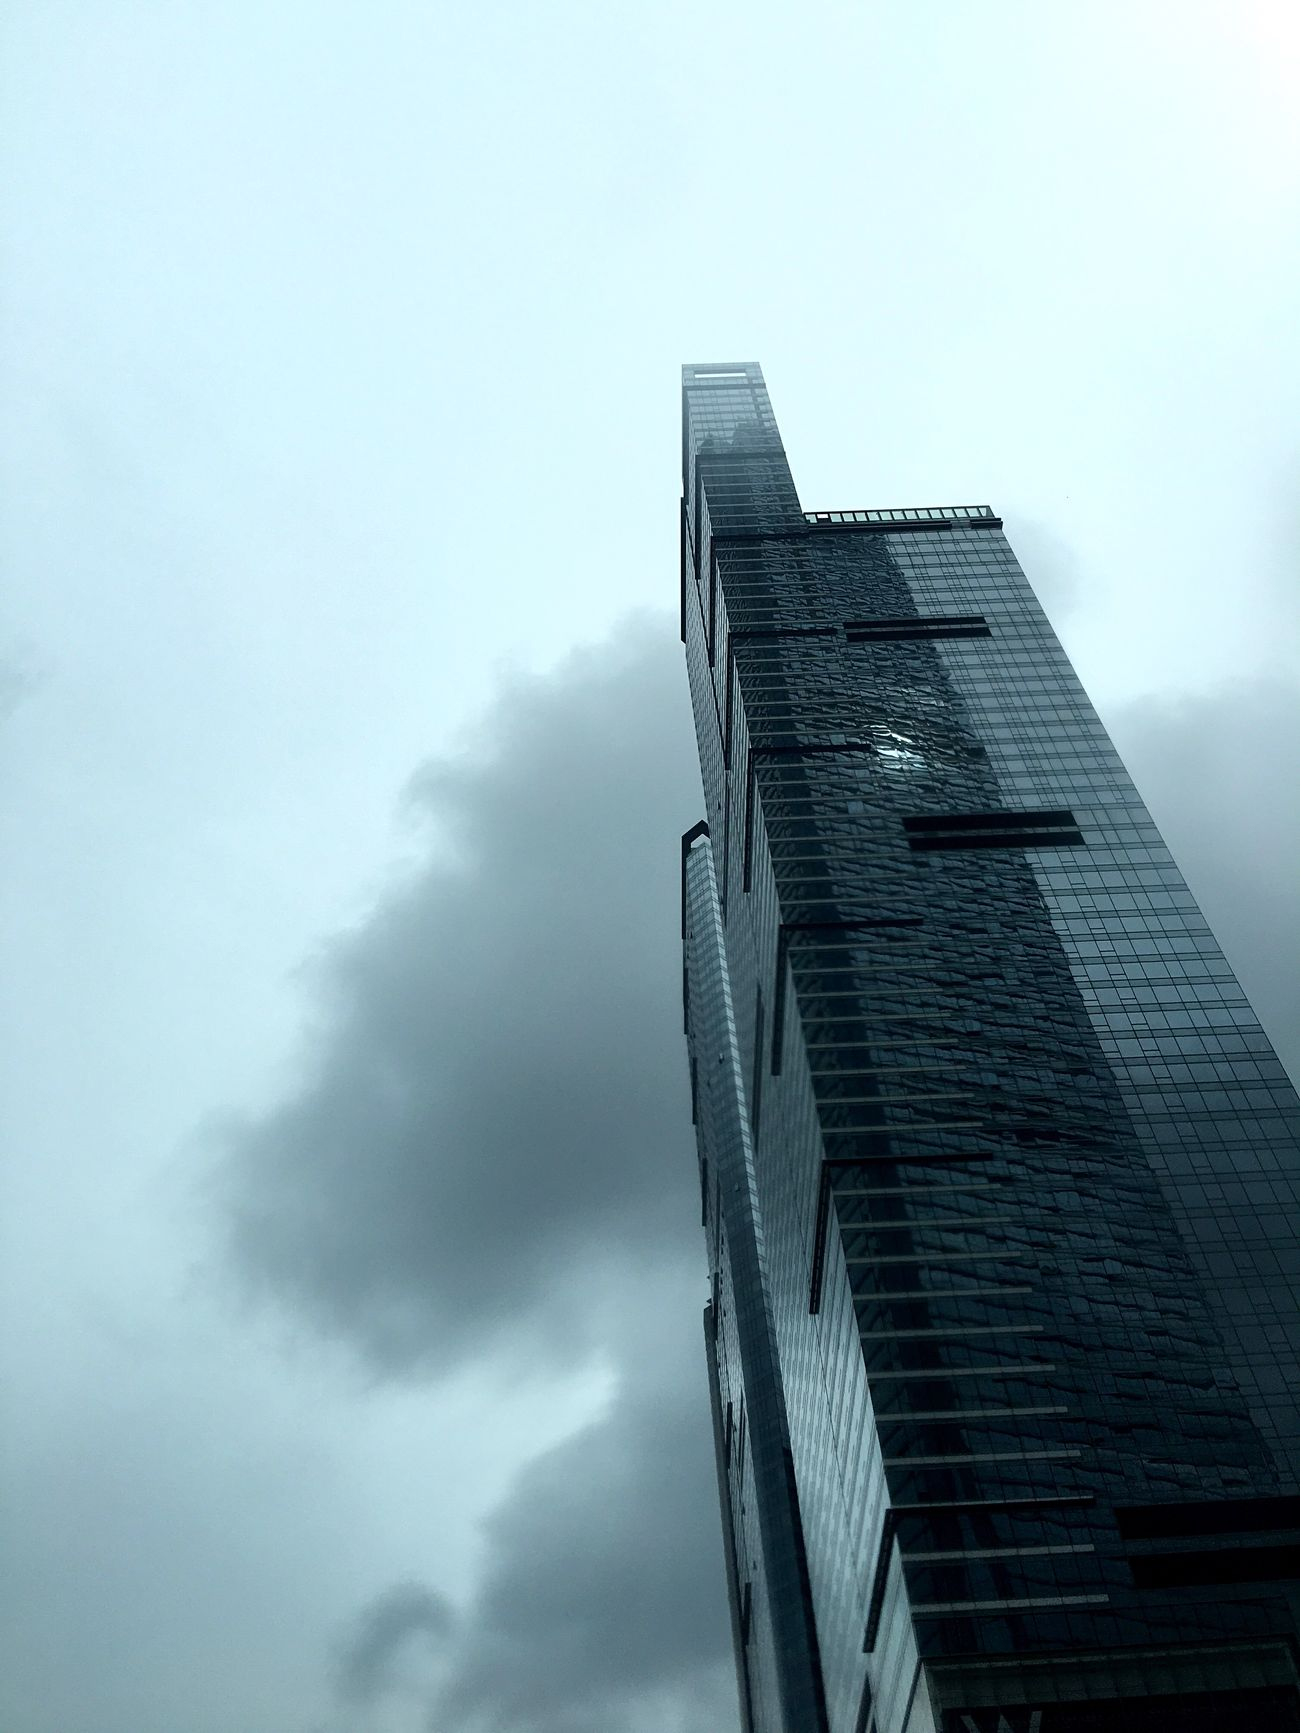 Architecture After The Typhoon Street Photographer-2016 Eyem Awards Light And Shadow Eye4photography  Hong Kong IPhoneography Hong Kong Architecture Building And Sky Building Exterior Building Reflection Cloud And Sky